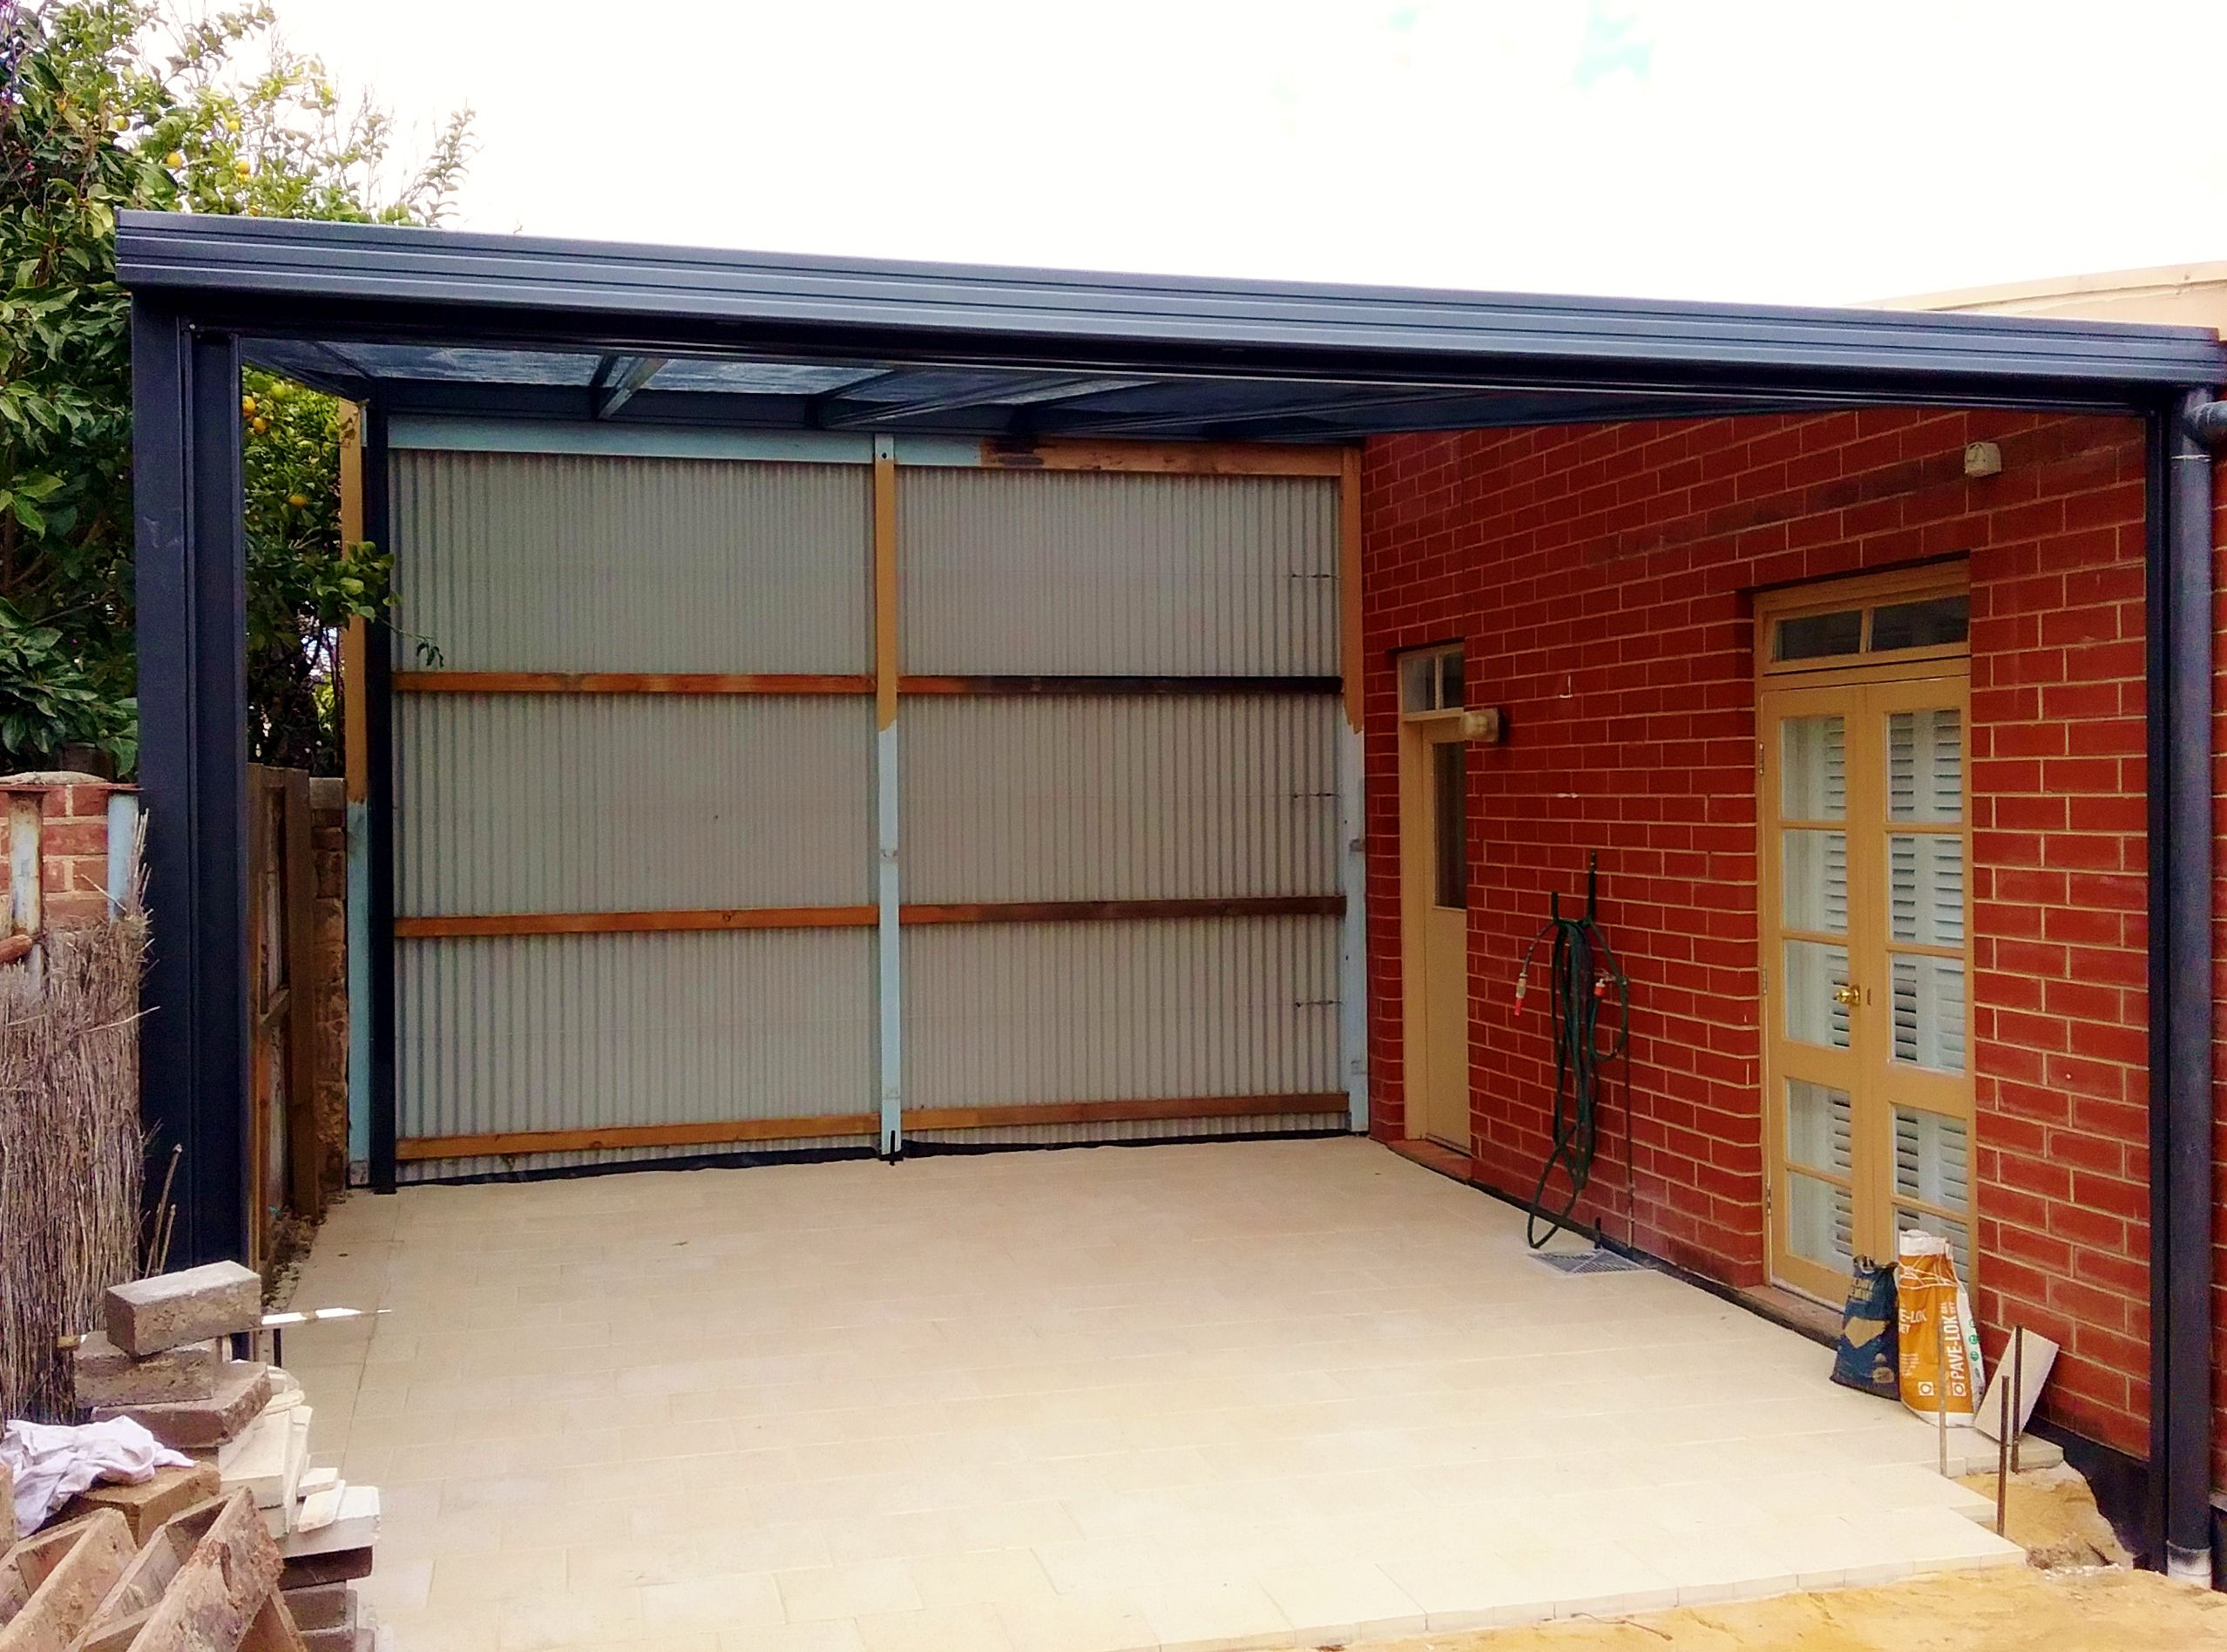 High Quality DMV Carport Designs With Roller Door And Wall Plastering Adelaide SA |  Carport | DMV Outdoor Solutions | Pinterest | Carport Designs, Roller Doors  And Doors